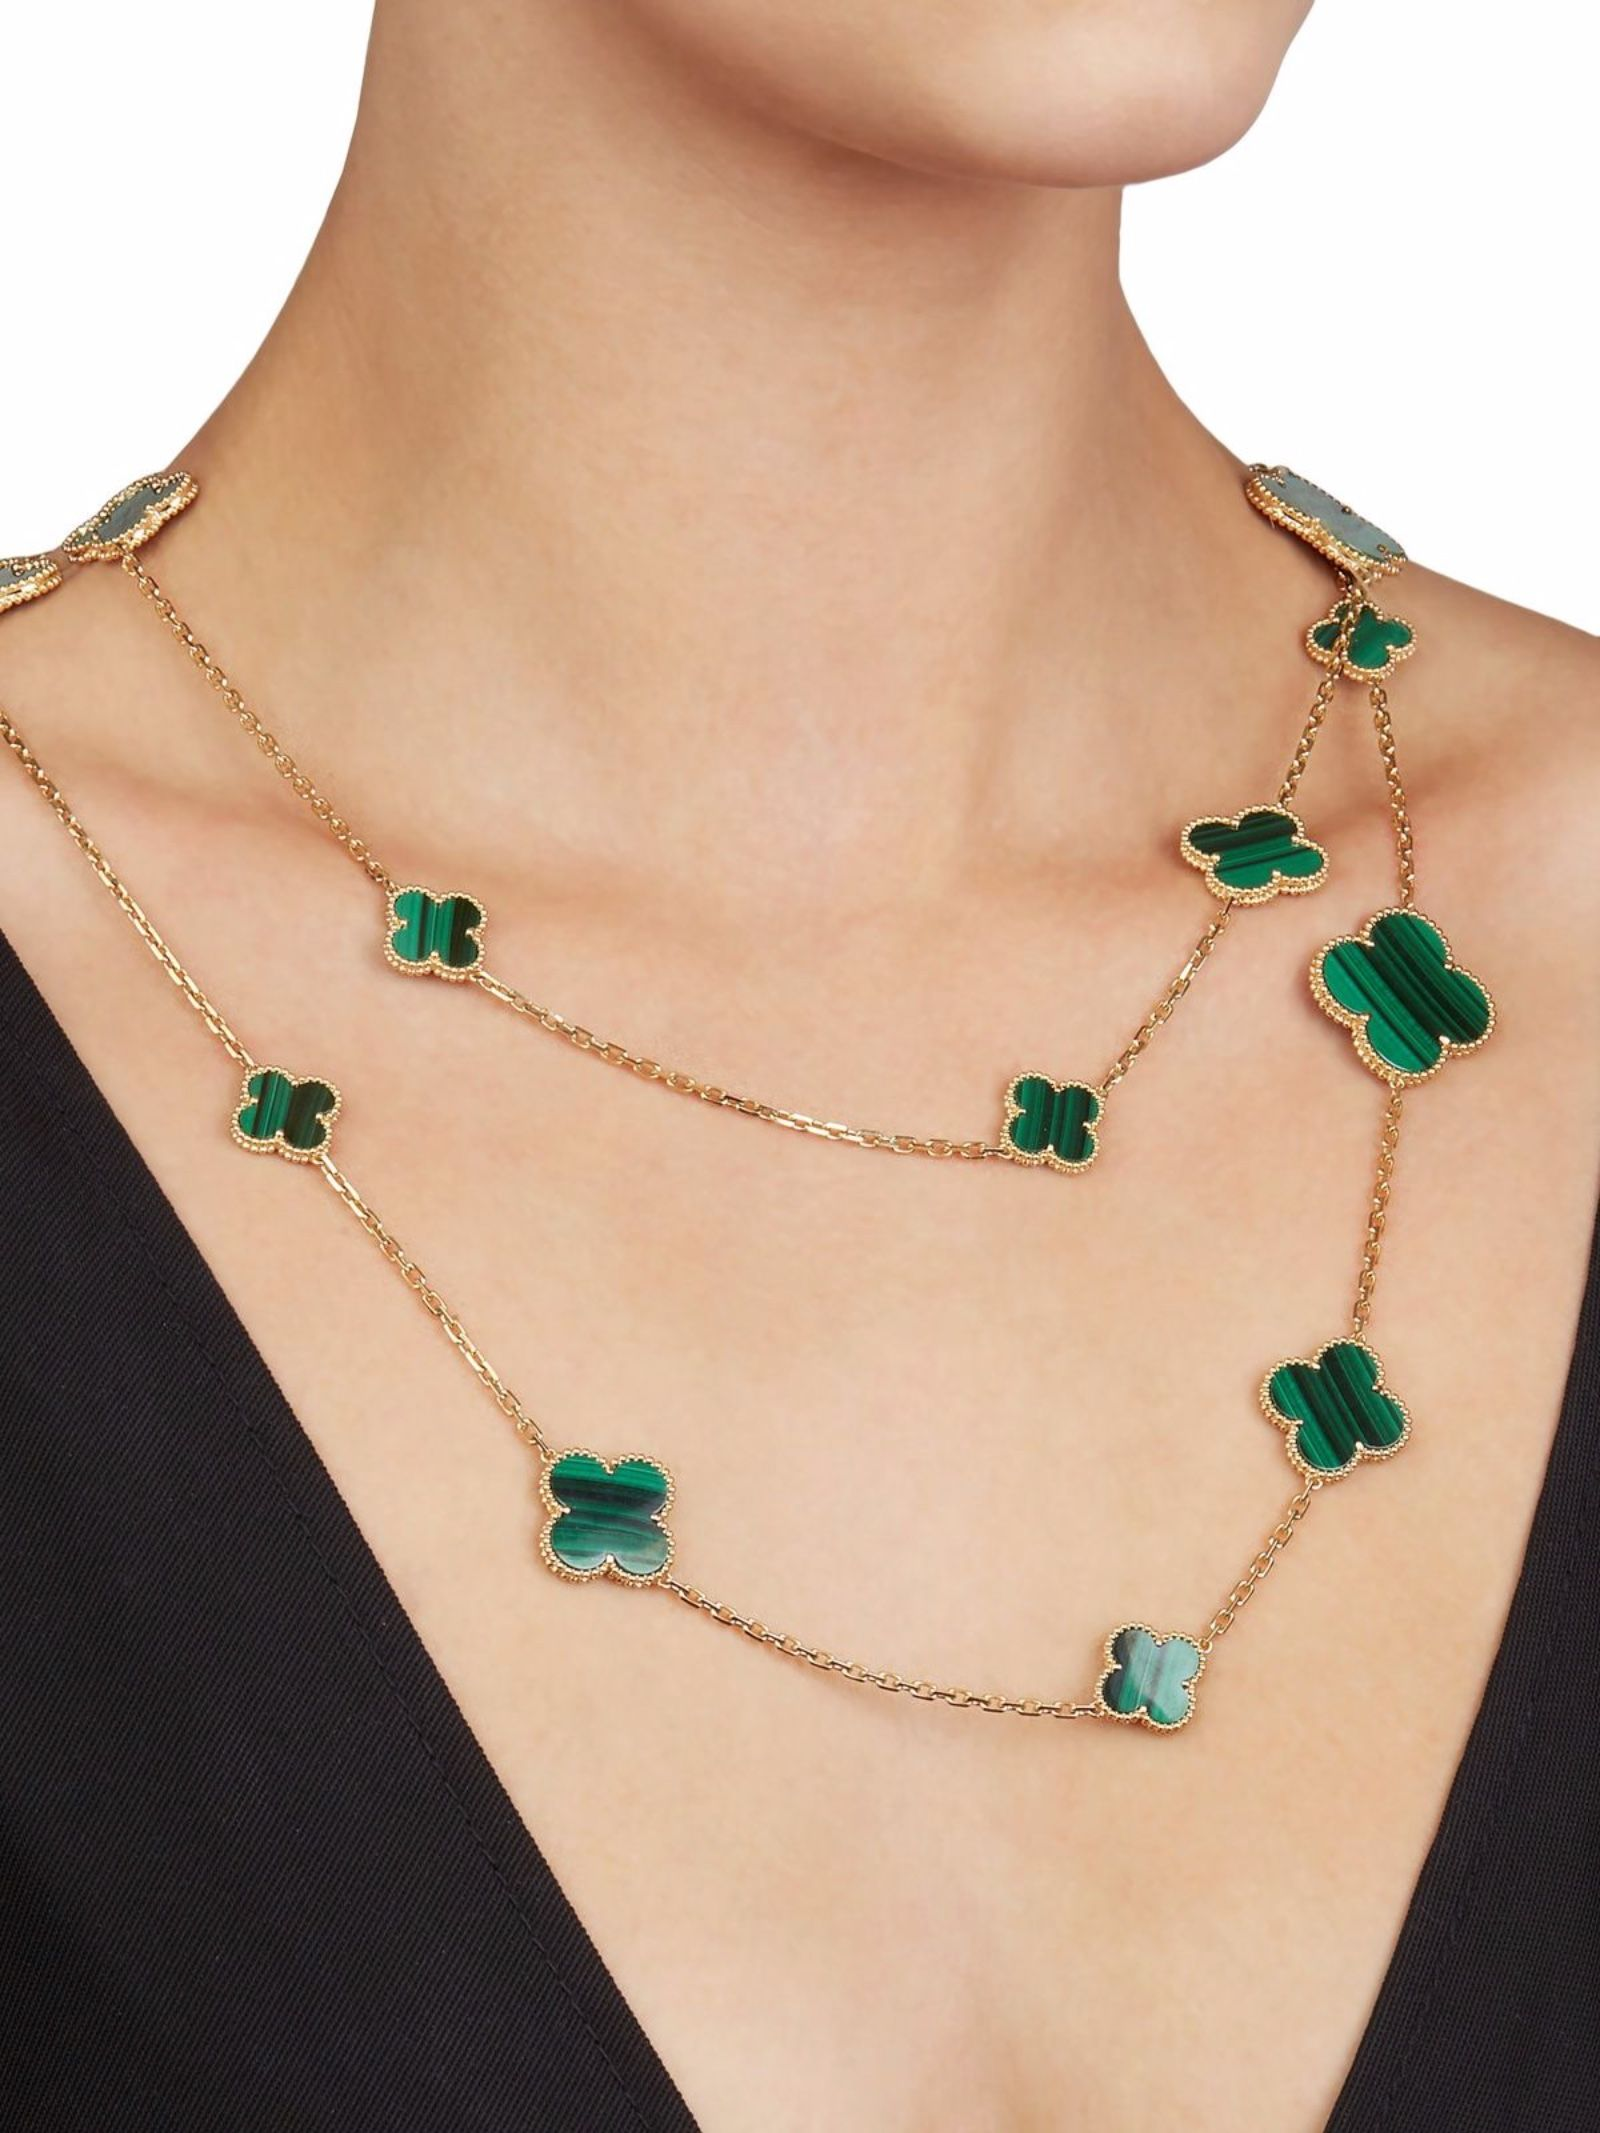 This Necklace by Van Cleef & Arpels is from their Magic